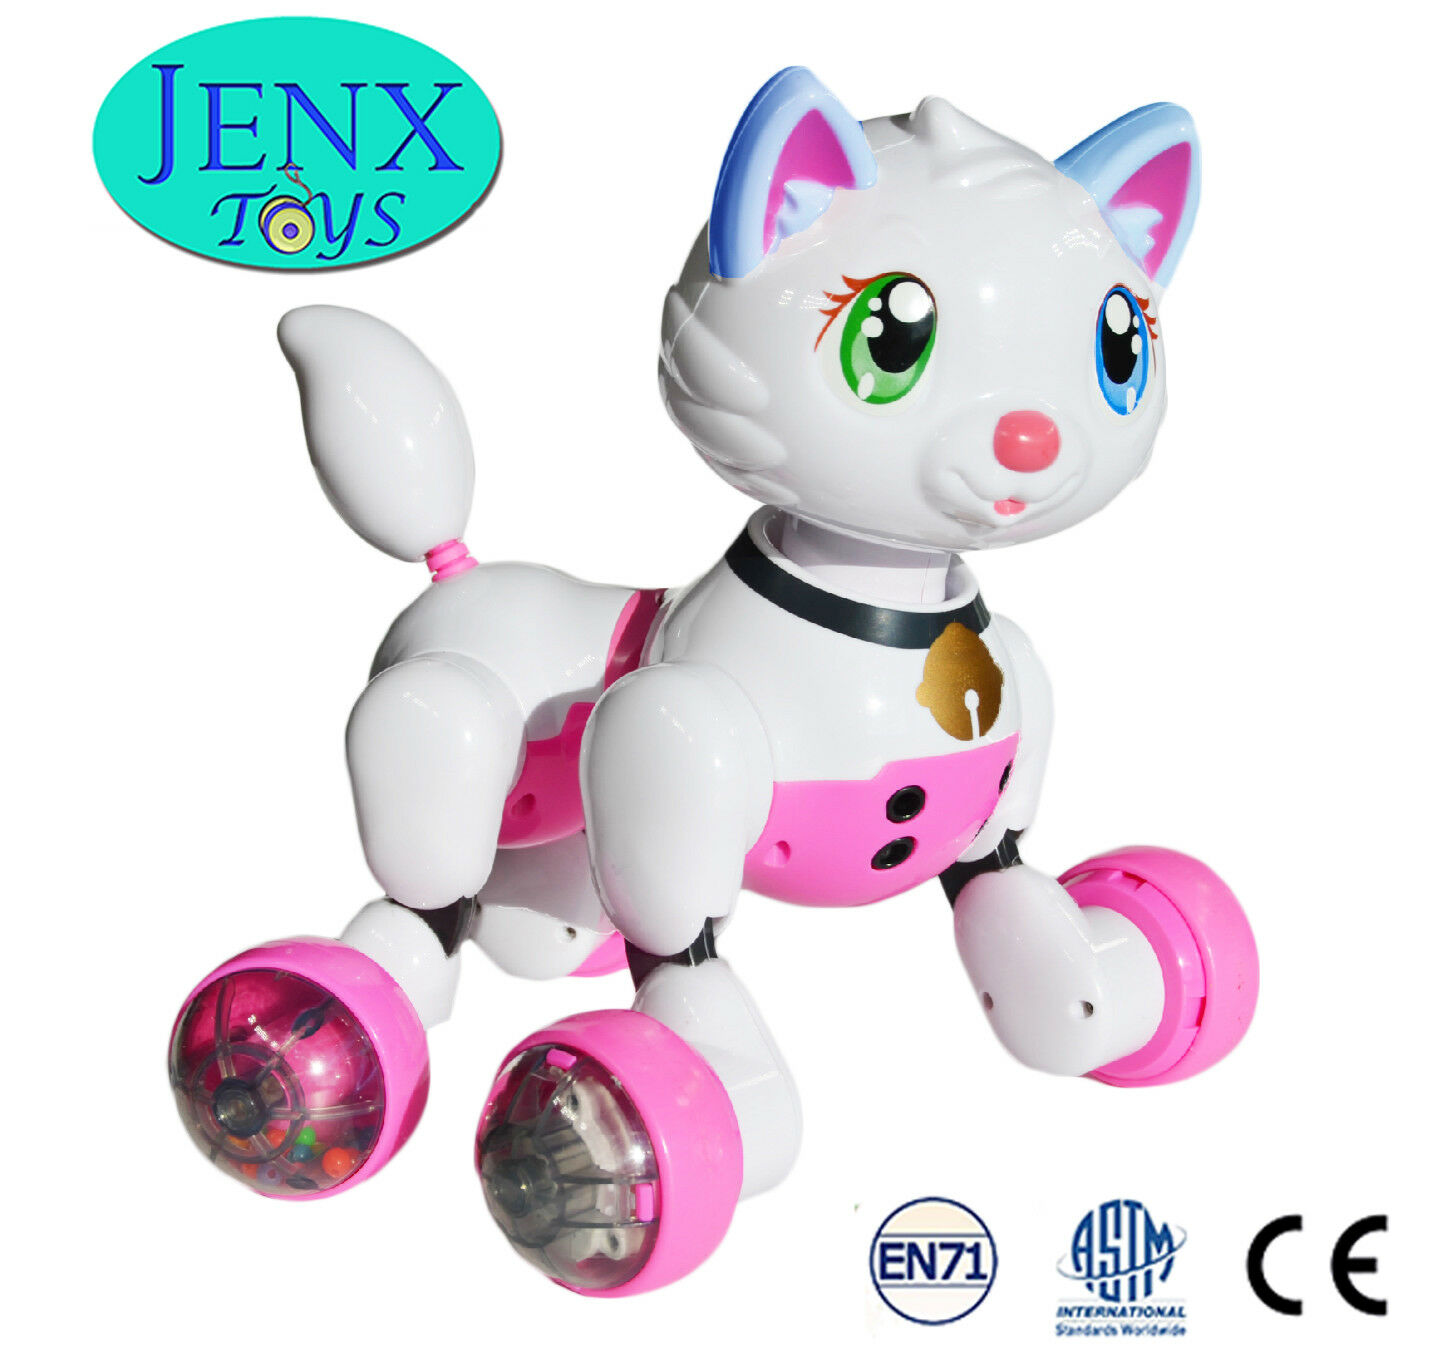 Jenx Toys Voice Recognition Gesture Sensing Electronic Robot Kitten Cat Pet Toy For Sale Online